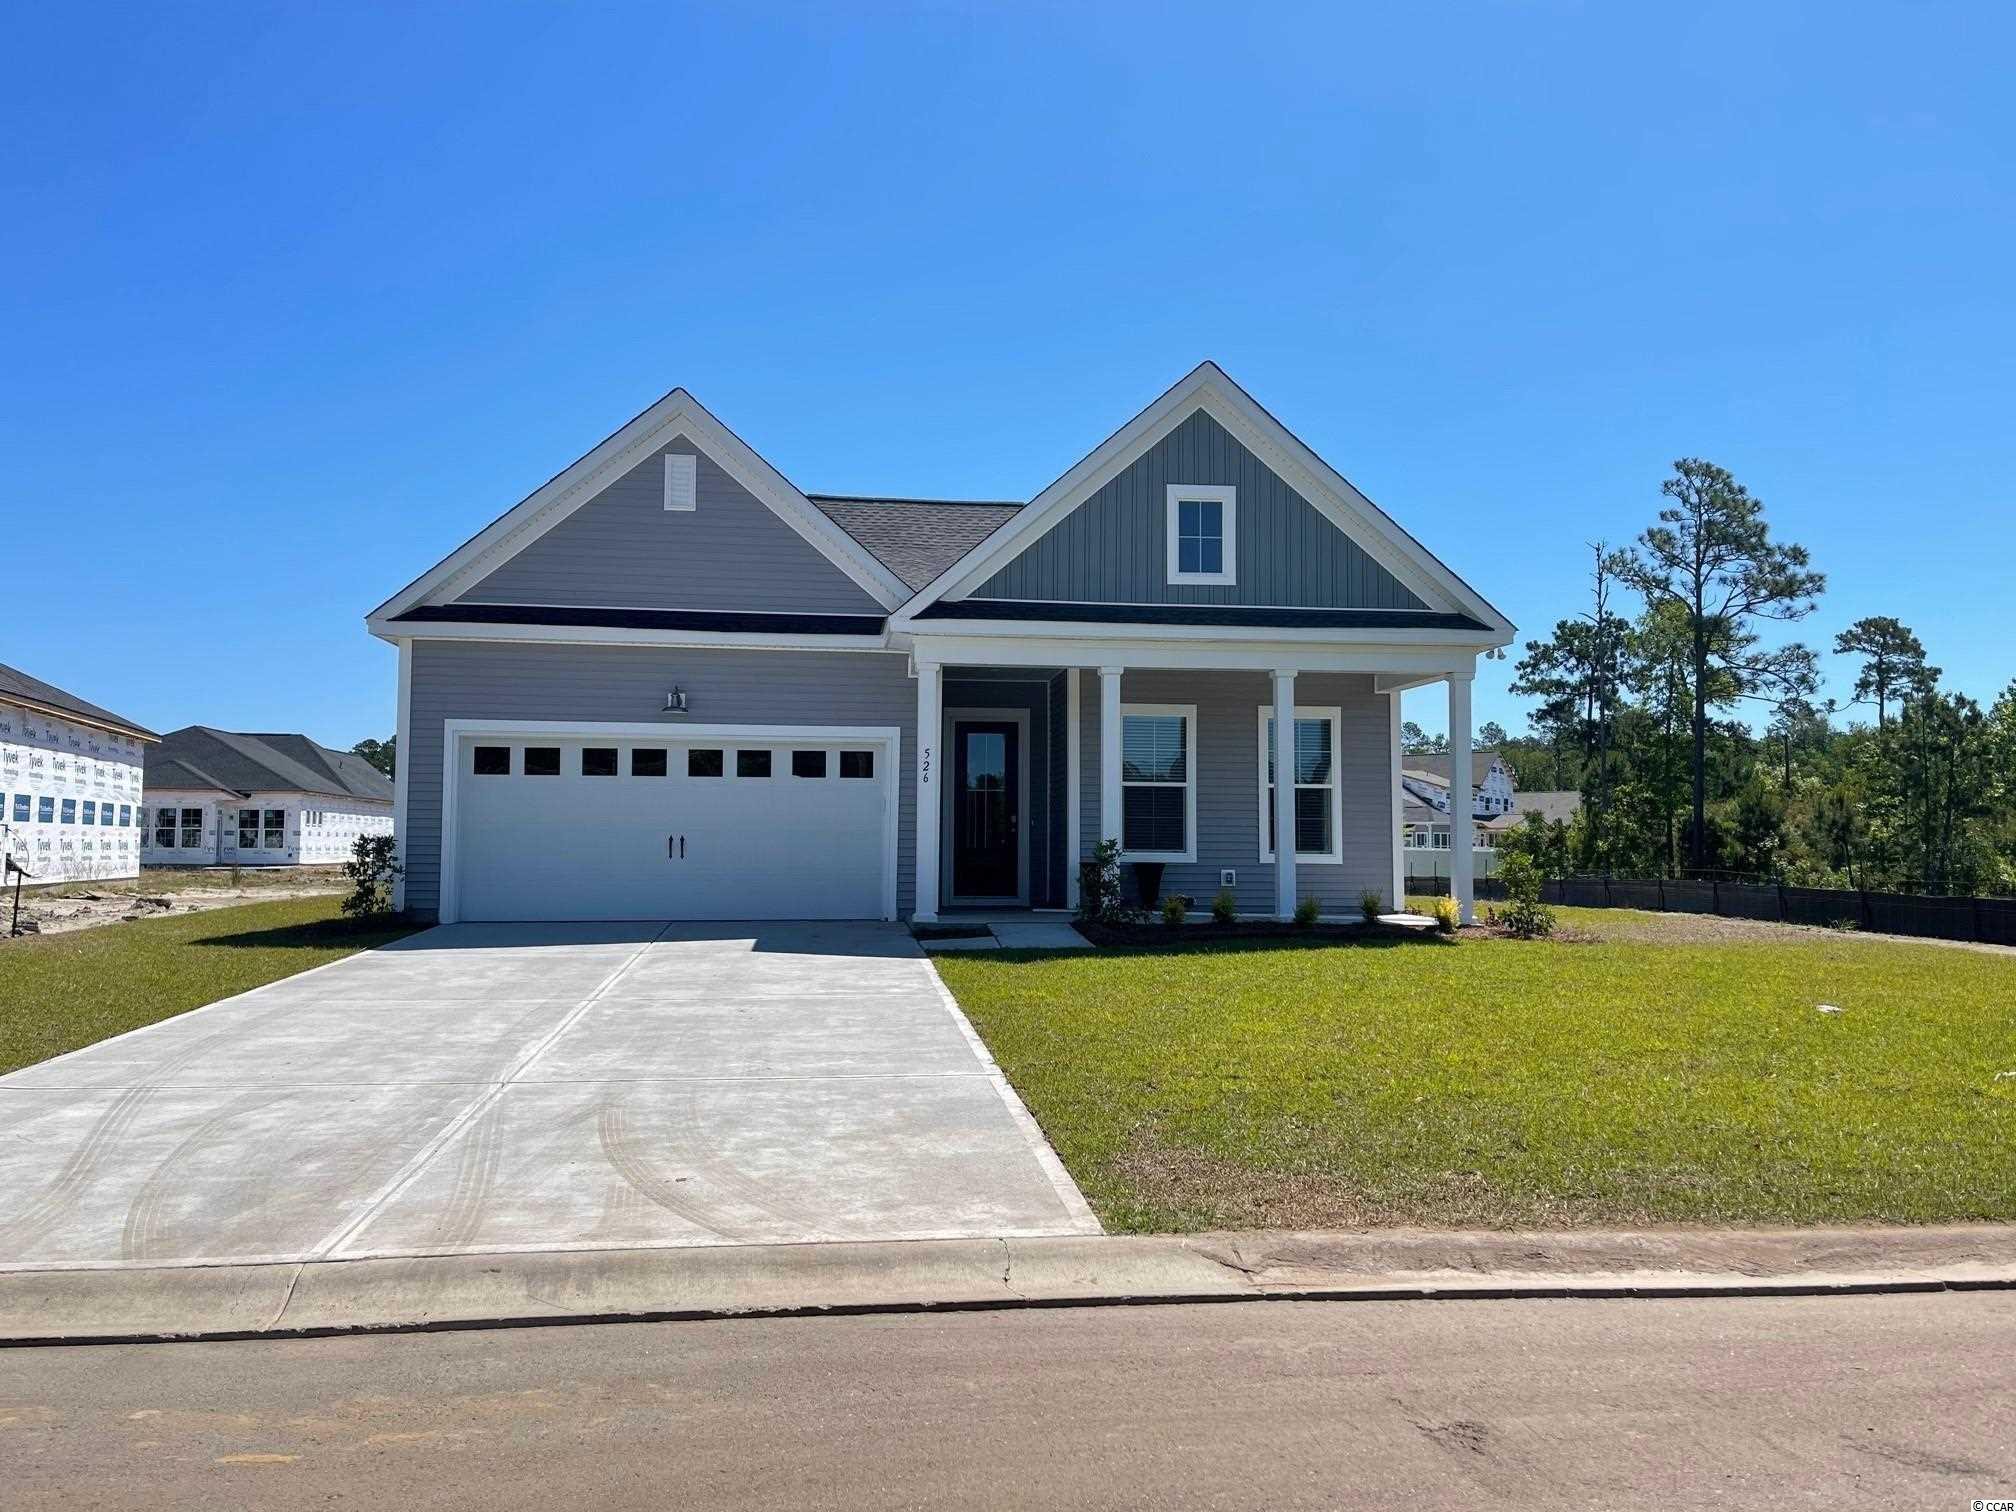 EXCITING NEW COMMUNITY! Wren Bay boasts over six acres of pristine ponds, 2.5 acres of wetlands, and 2.8 acres of green space. The resort style swimming pool will offer a sundeck, bath house, and outdoor gathering space. Easy access to everything you need right outside your door! We are just 5 miles from the crisp blue waters of the Atlantic Ocean, 3 miles to Marshwalk, and just minutes from retail and grocery shopping. The Madison Plan offers an open concept with soaring 10ft ceilings, gas range and upgraded kitchen, Hardwood flooring, Sunroom, double door entry into the Master, and double sinks. The garage is a wood workers dream with a tandem garage, that can be used as a workshop, golf cart bay, or extra storage! Home is under construction and will be ready Spring 2021.